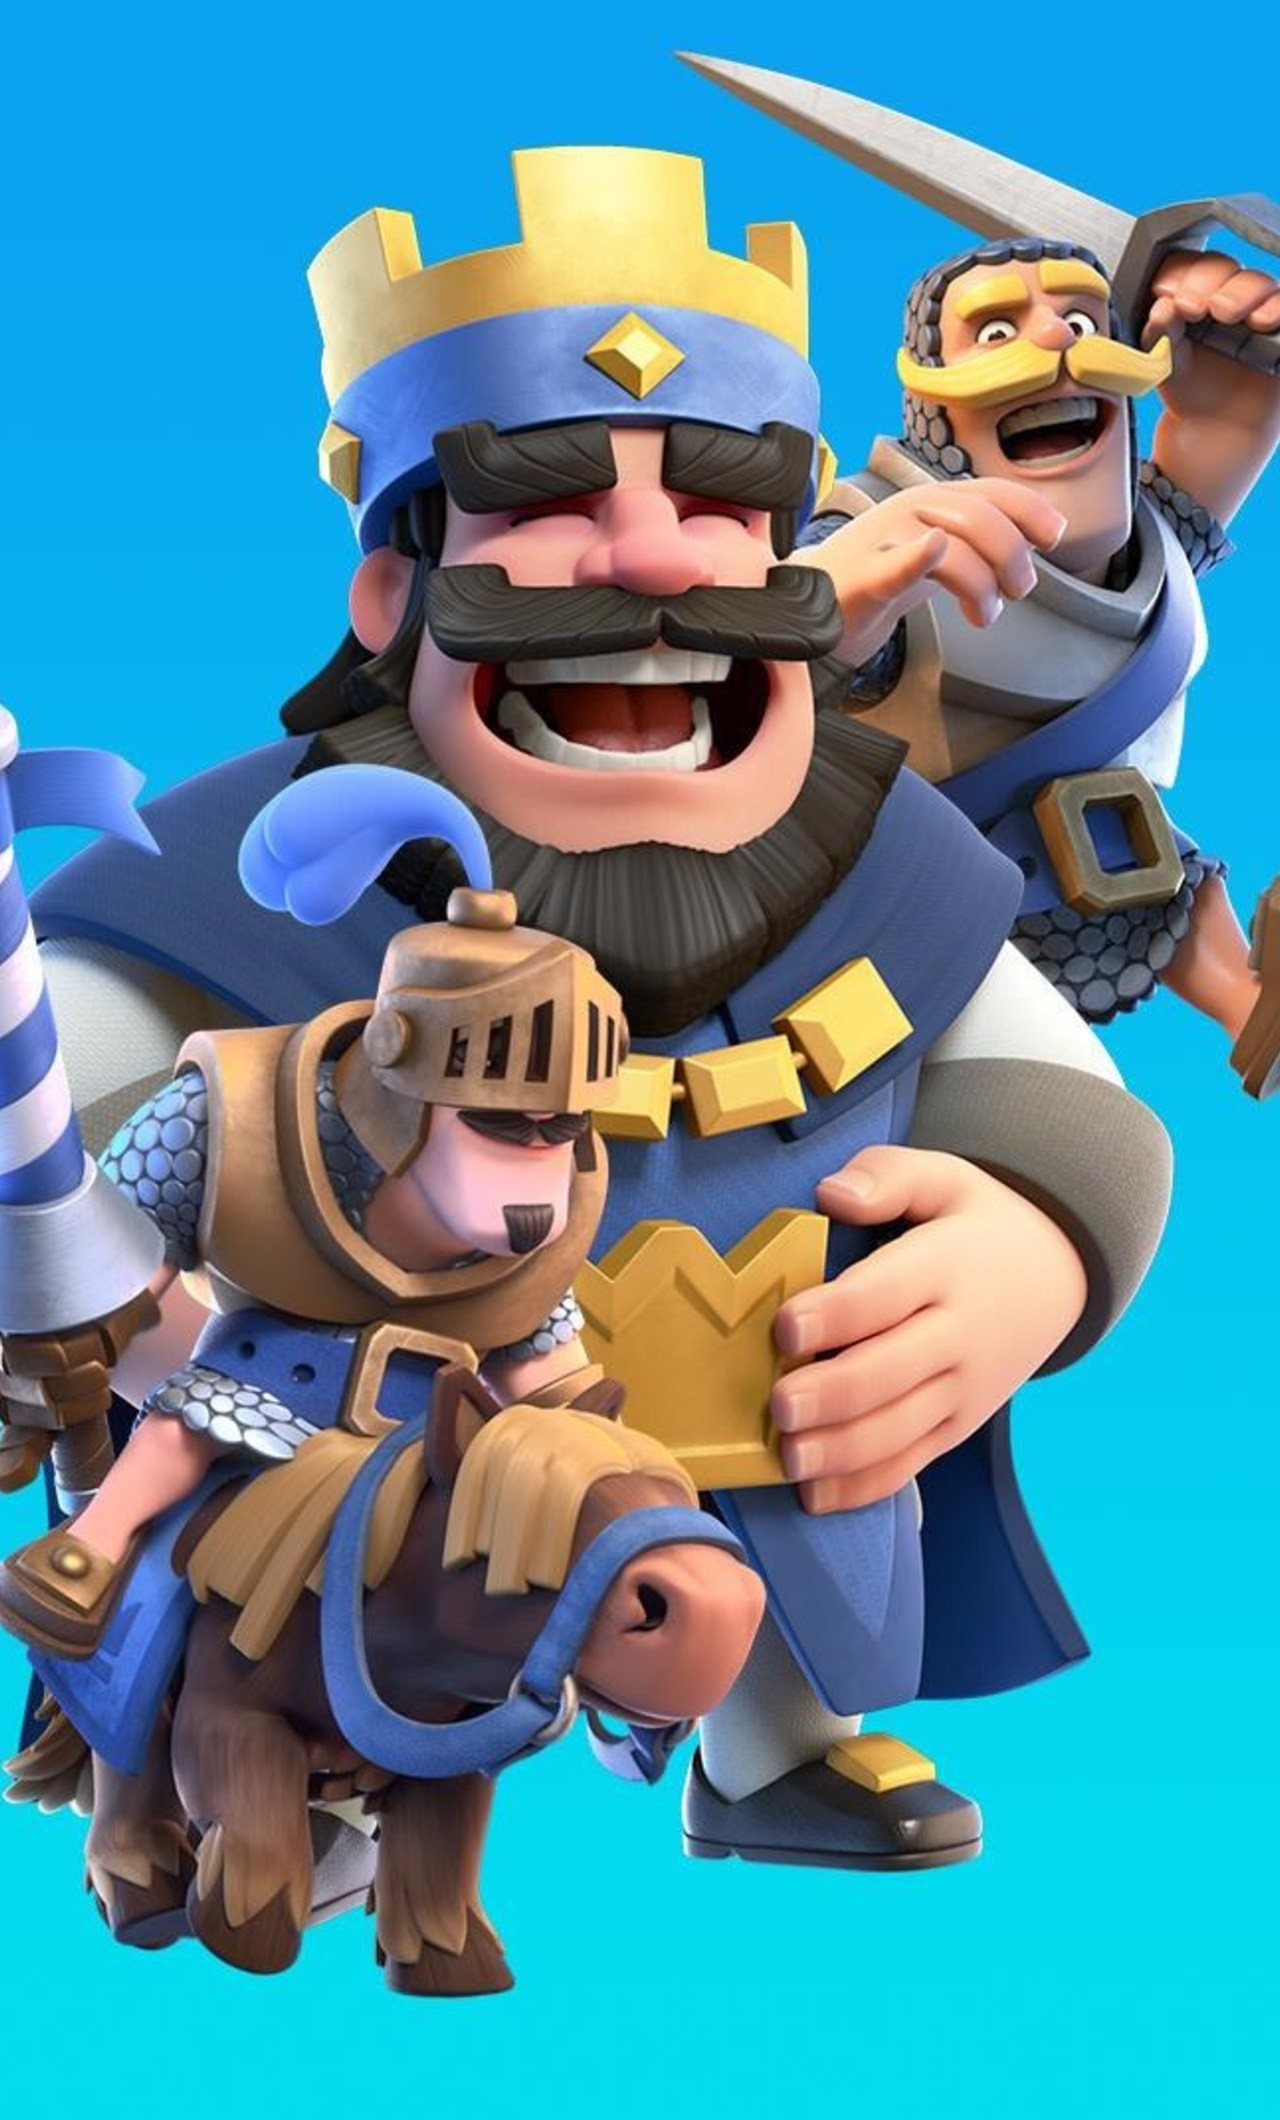 1280x2120 X Clash Royale Desktop Iphone Backgrounds Hd Wallpaper For Laptop Images